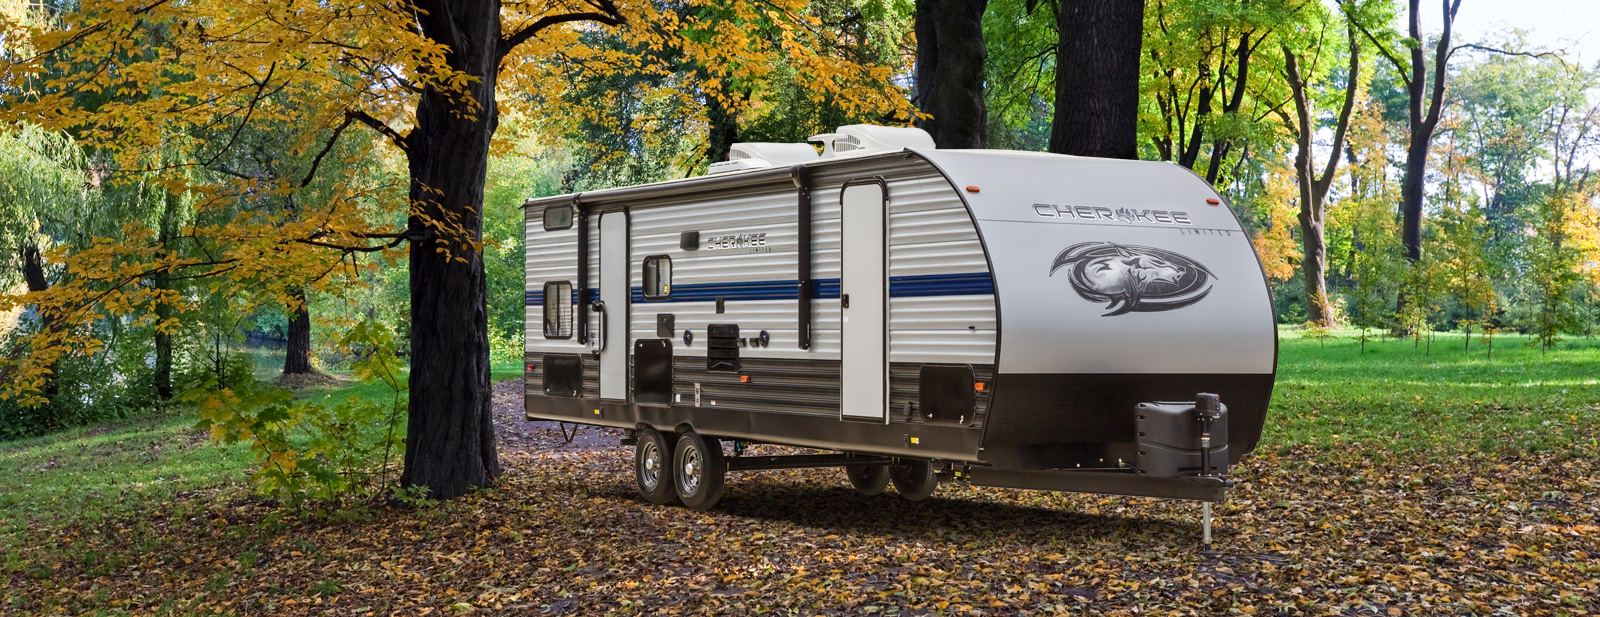 Forest River Cherokee >> Cherokee West Forest River Rv Manufacturer Of Travel